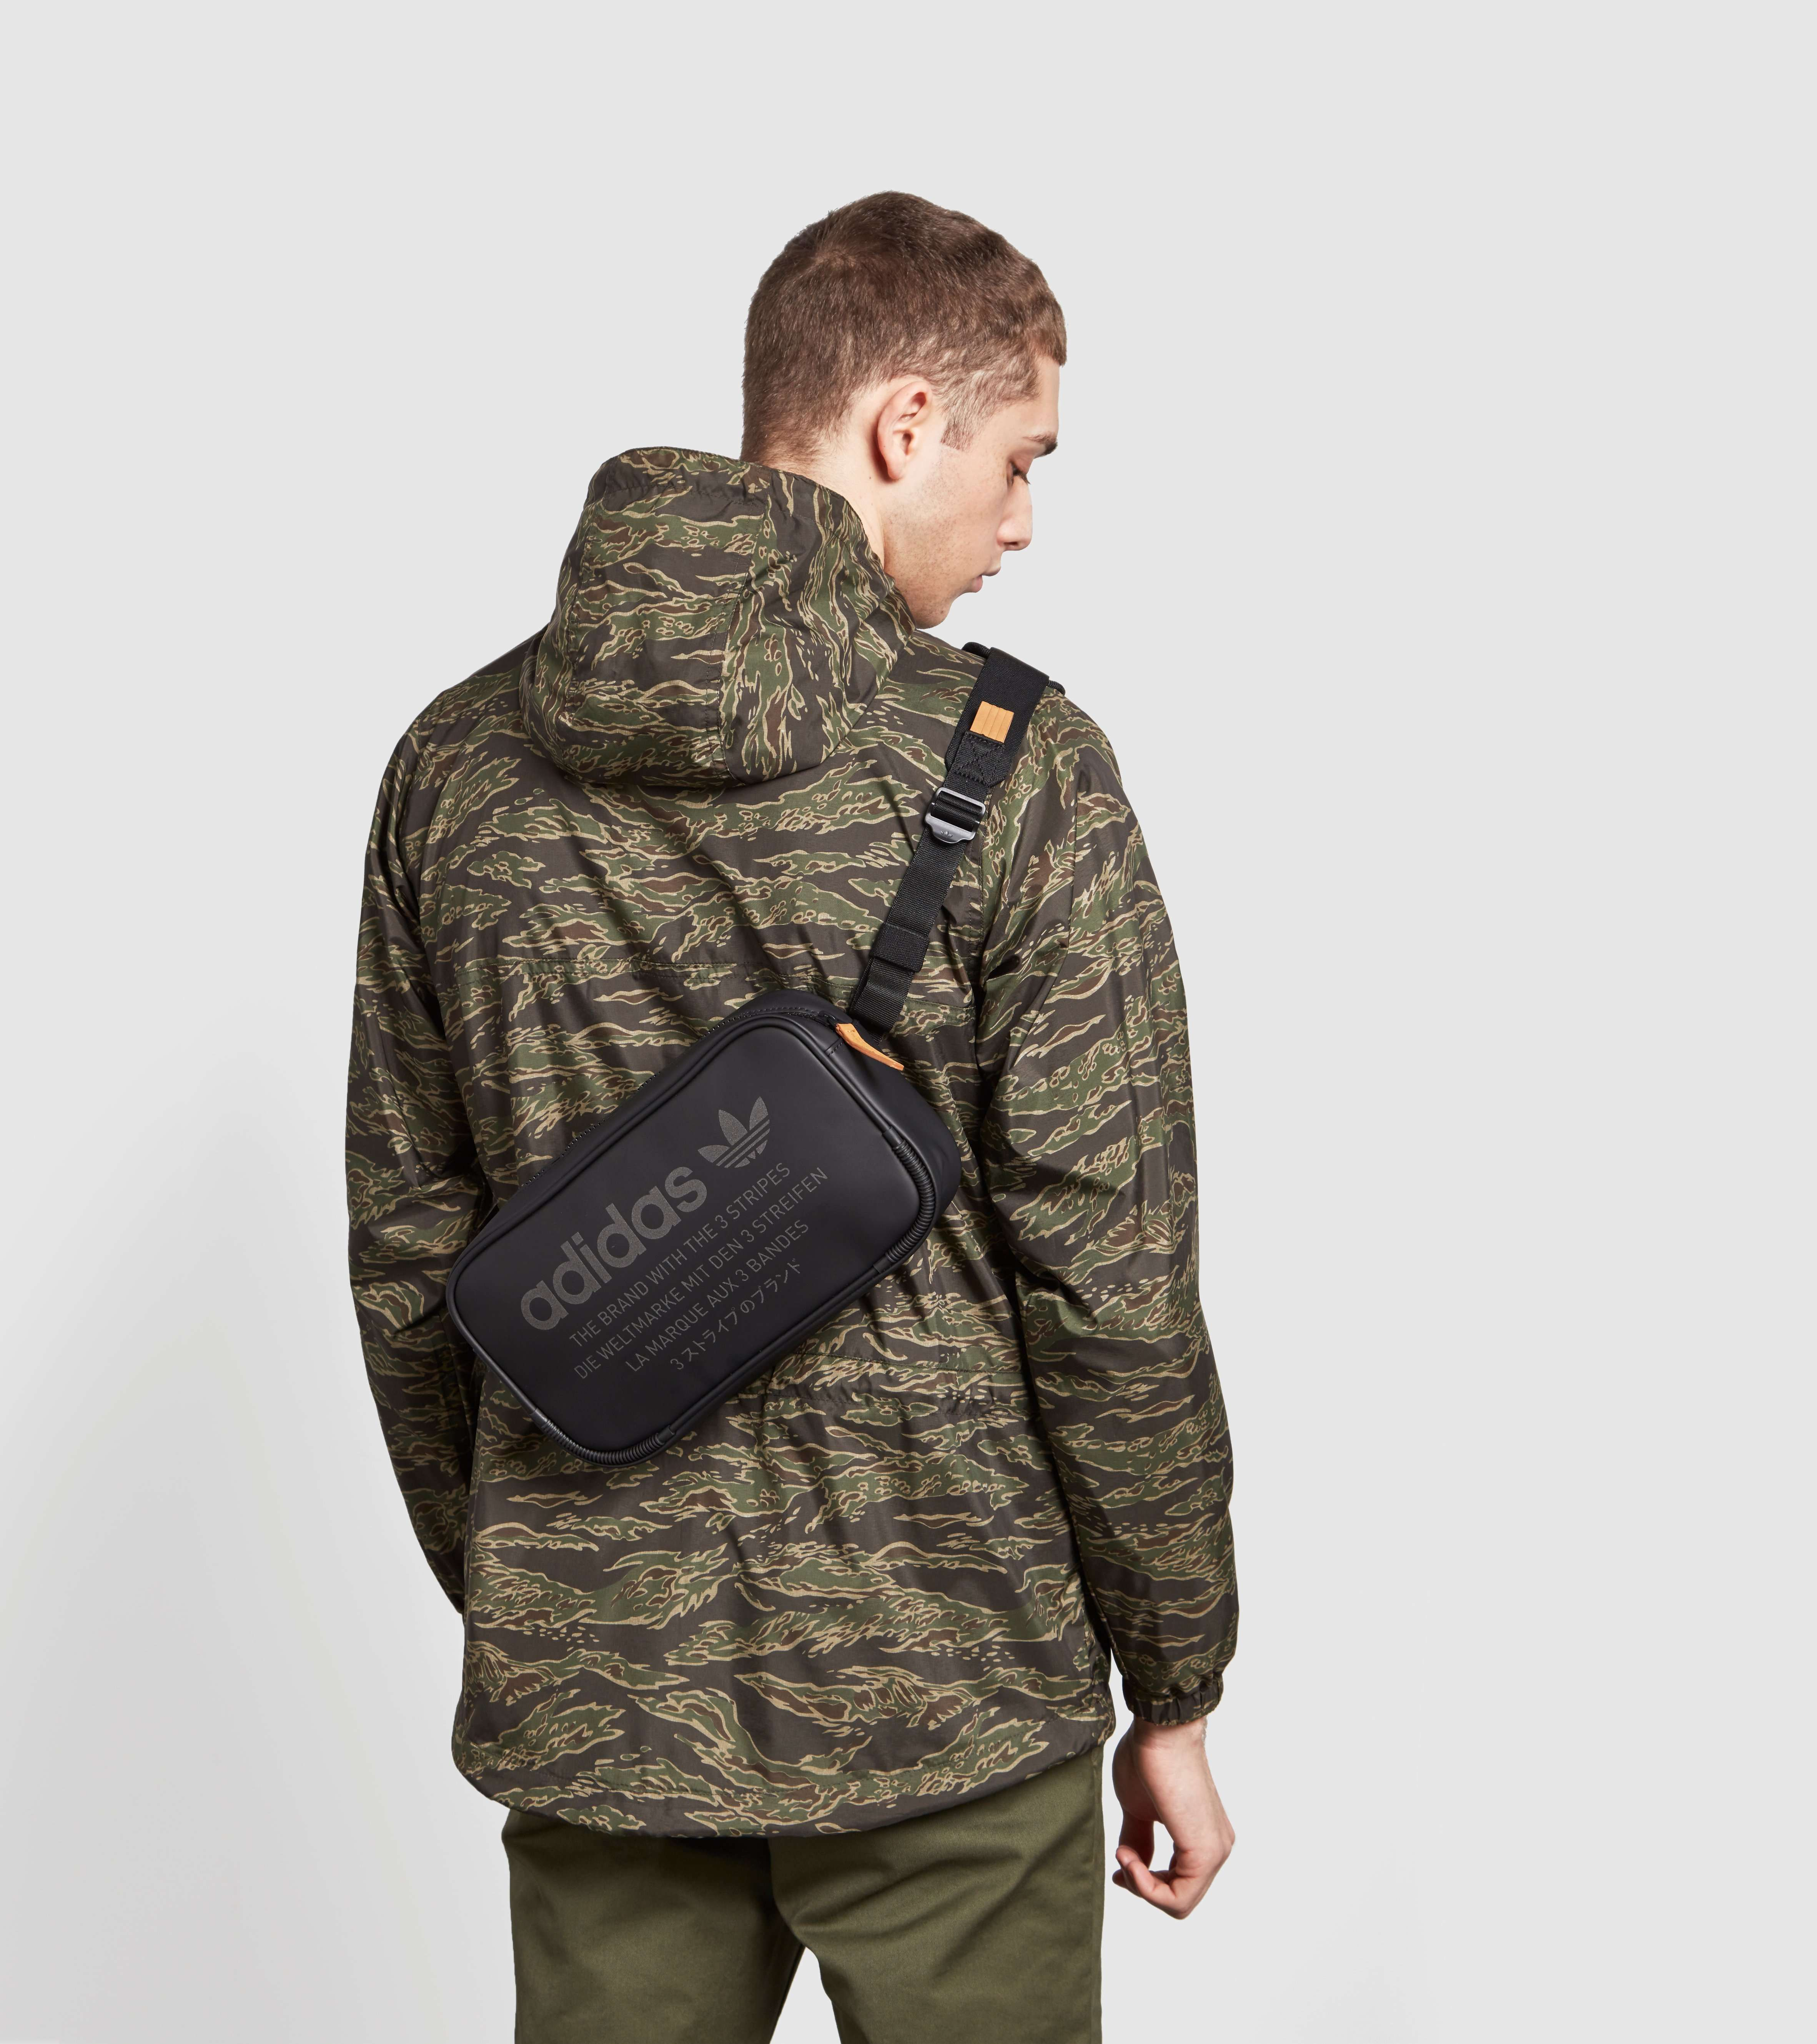 190722655bc adidas Originals NMD Side Bag - find out more on our site. Find the  freshest in trainers and clothing online now.